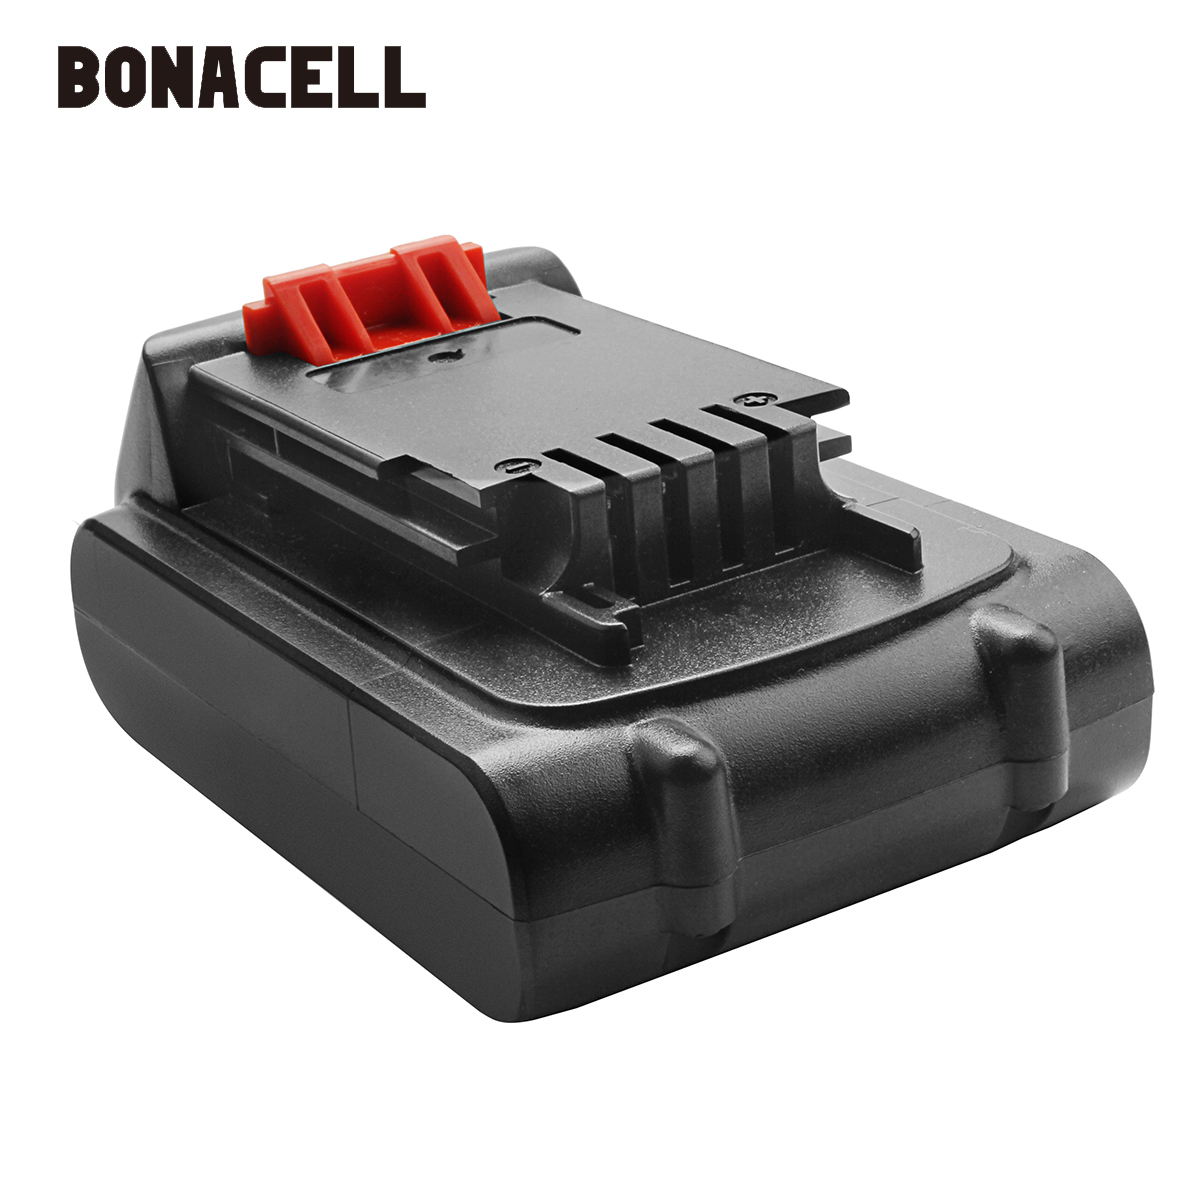 Bonacell 18V 20V 2000mAh Li ion Rechargeable Battery Power Tool Replacement Battery for BLACK DECKER LB20 LBX20 LBXR20 L30 in Replacement Batteries from Consumer Electronics